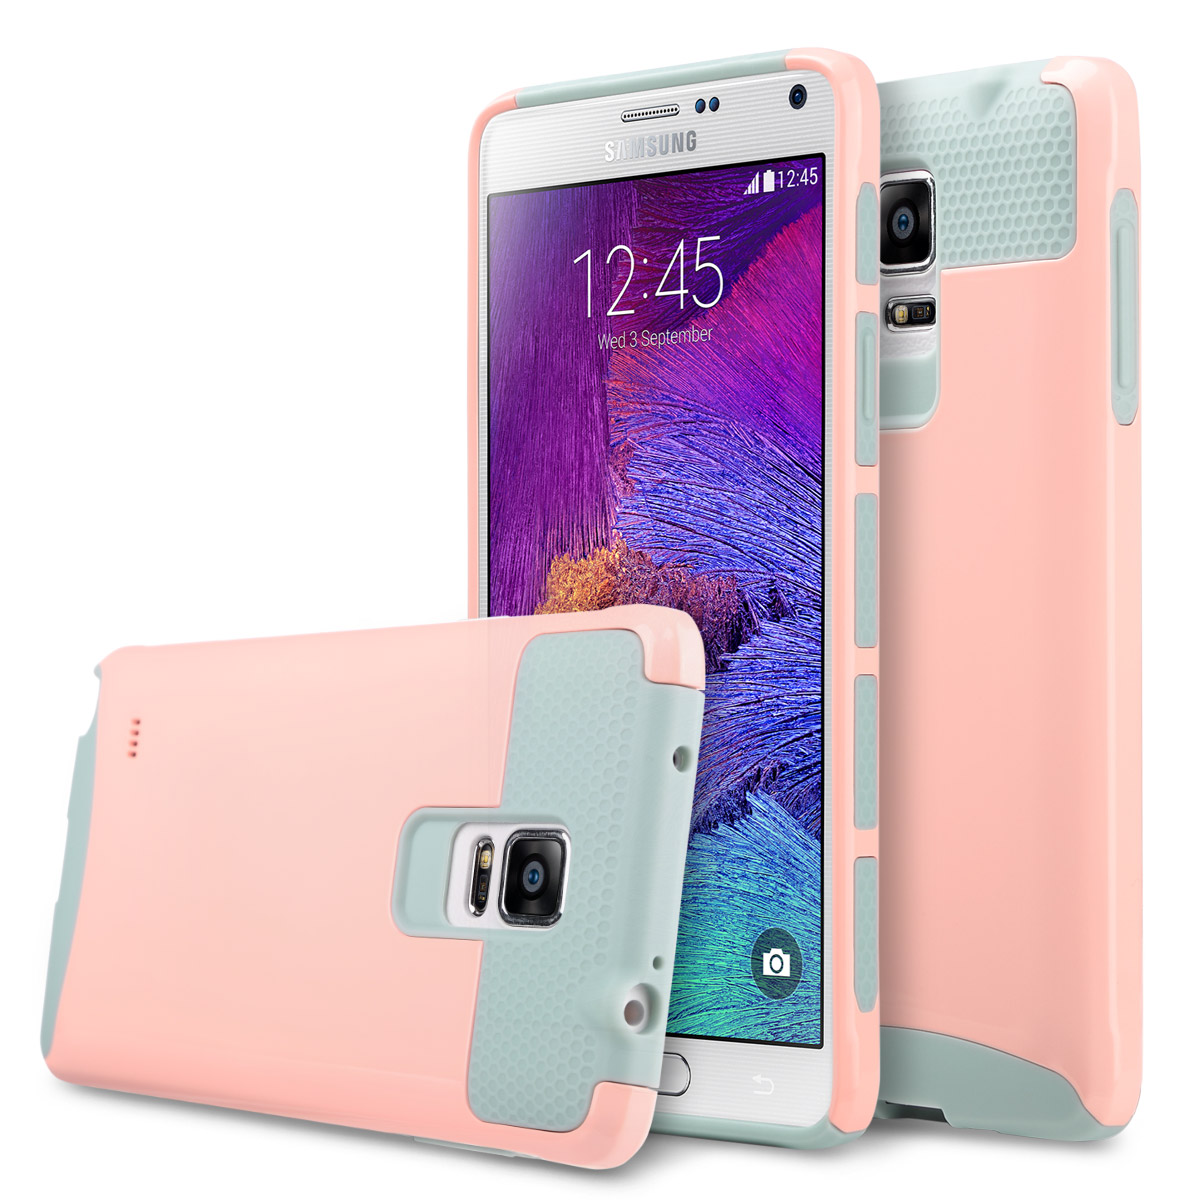 Galaxy Note 4 Case, ULAK Slim Fit Protection Case Shockproof Hard Rugged Ultra Protective Back Rubber Cover with Dual Layer Impact Protection for Samsung Galaxy Note 4,Pink/Grey